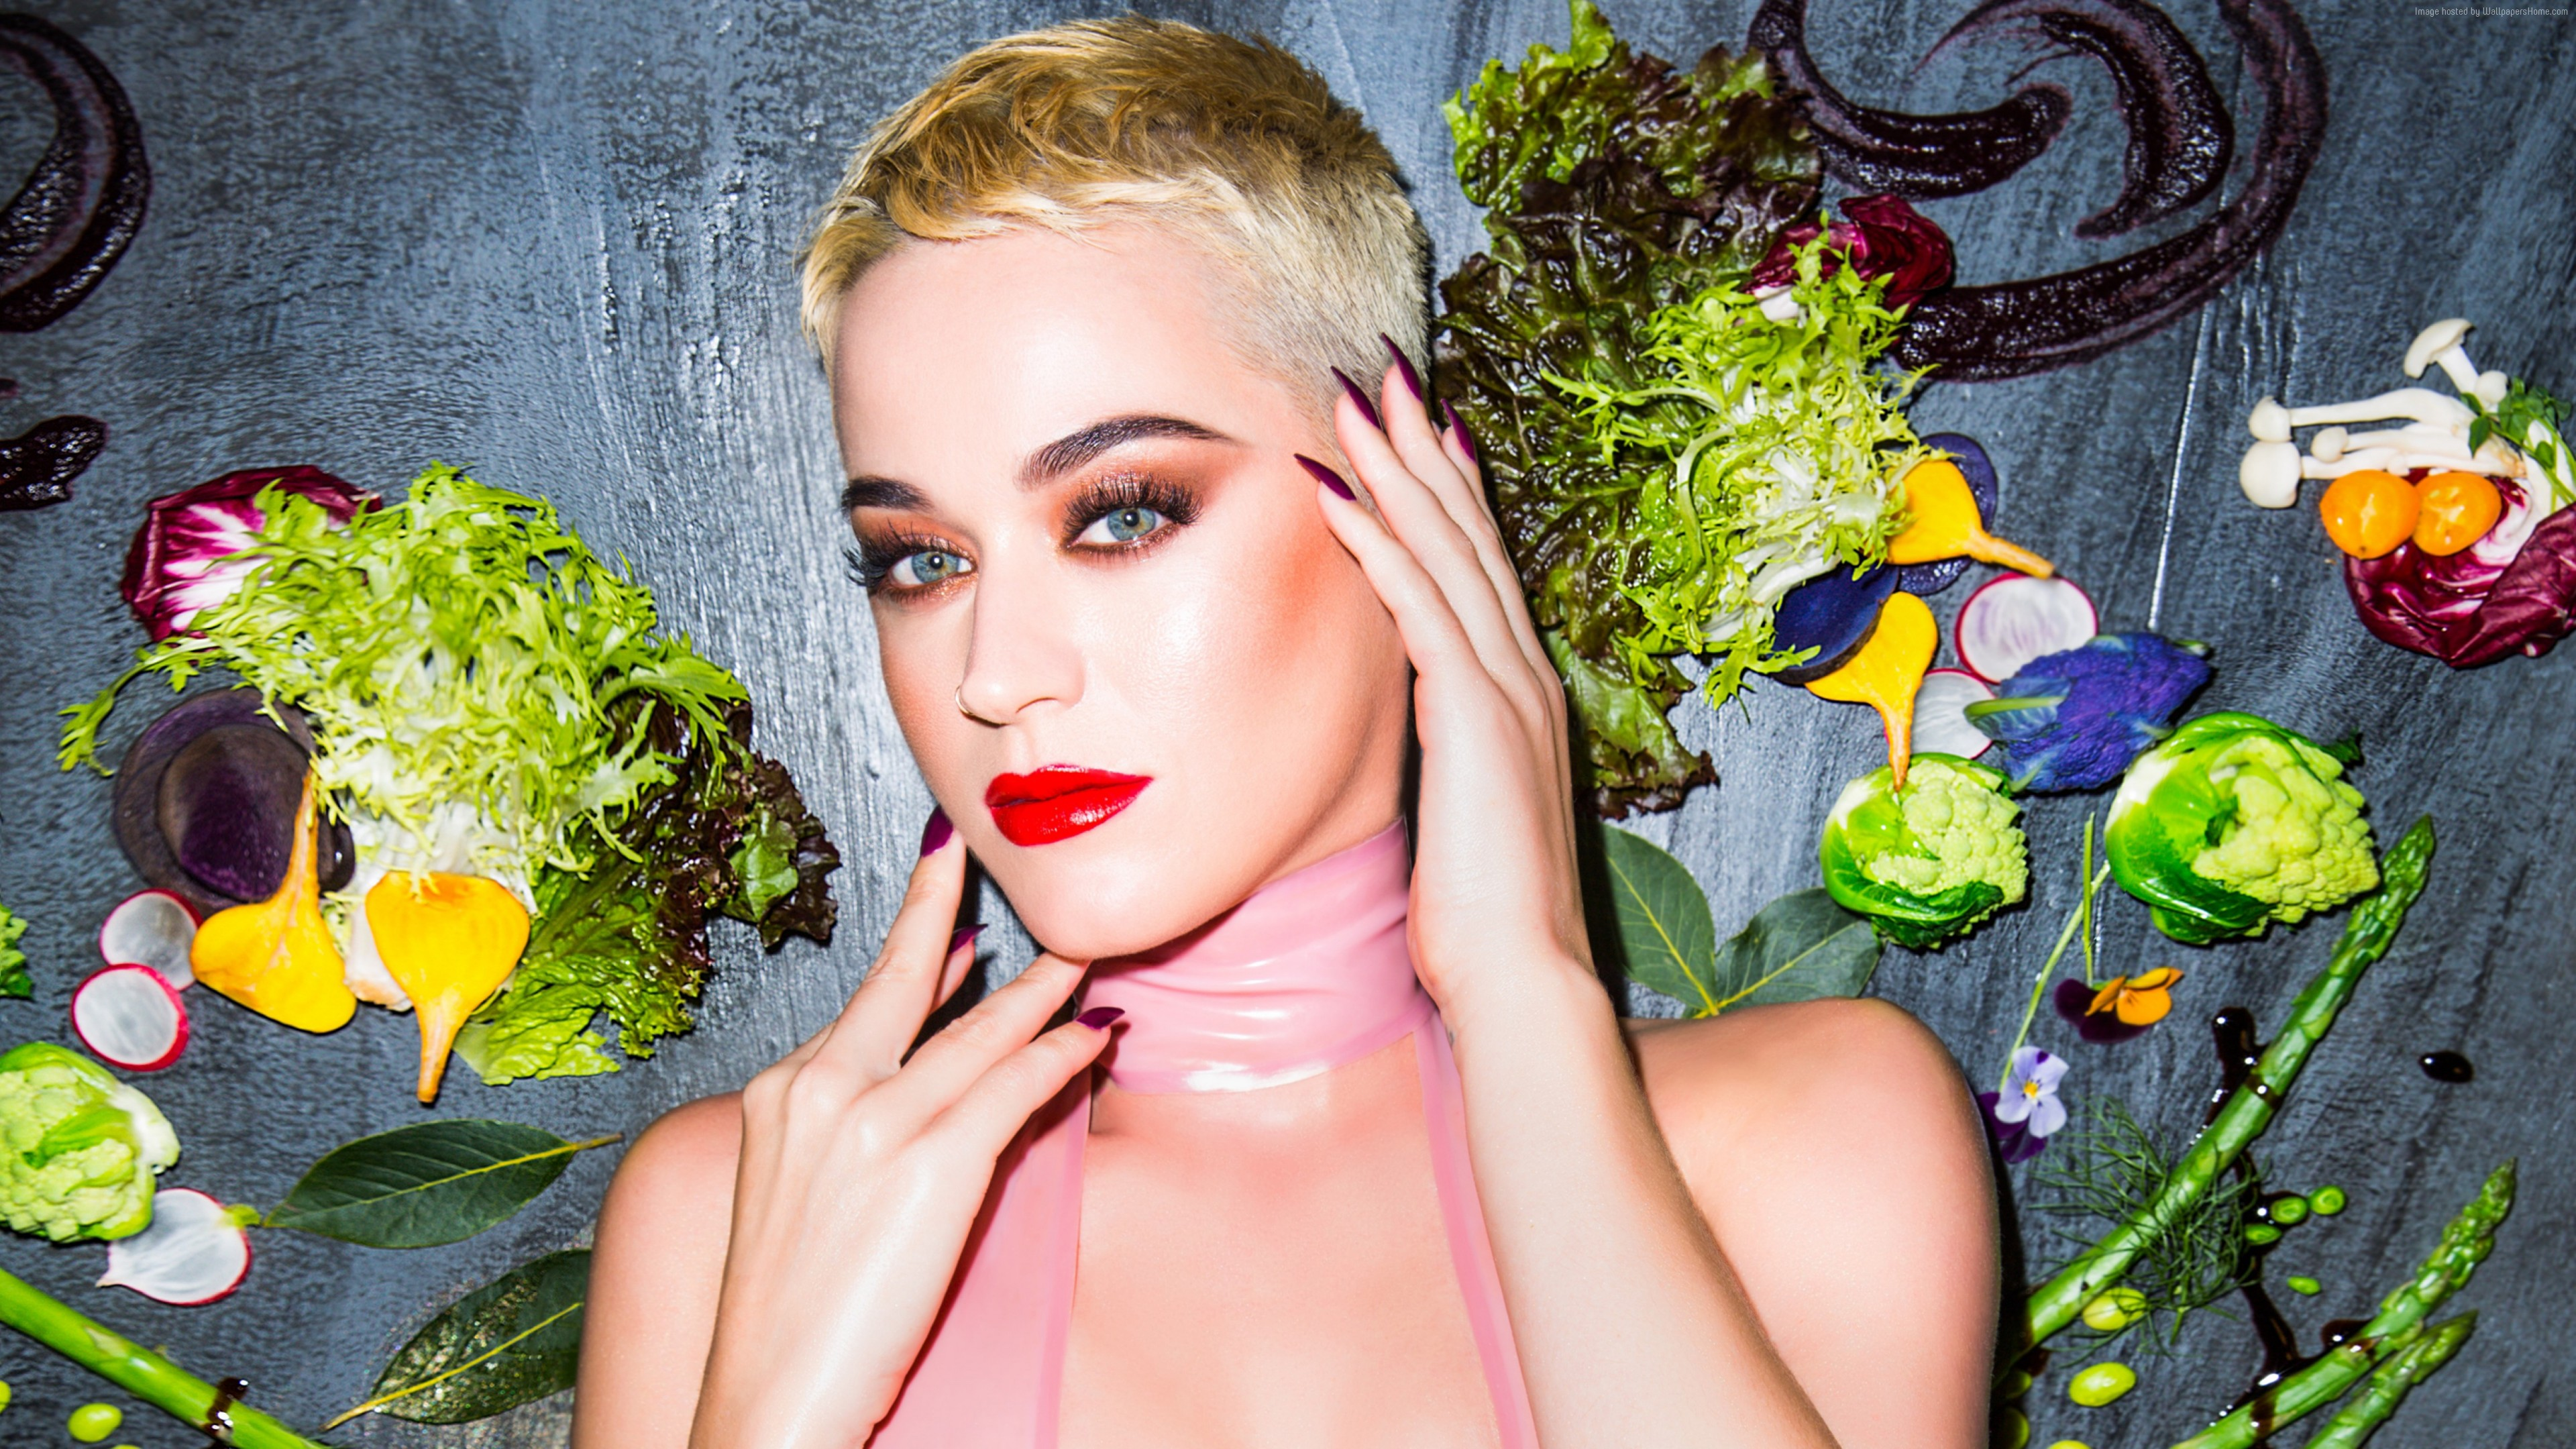 Wallpaper Katy Perry, photo, 5k, Music